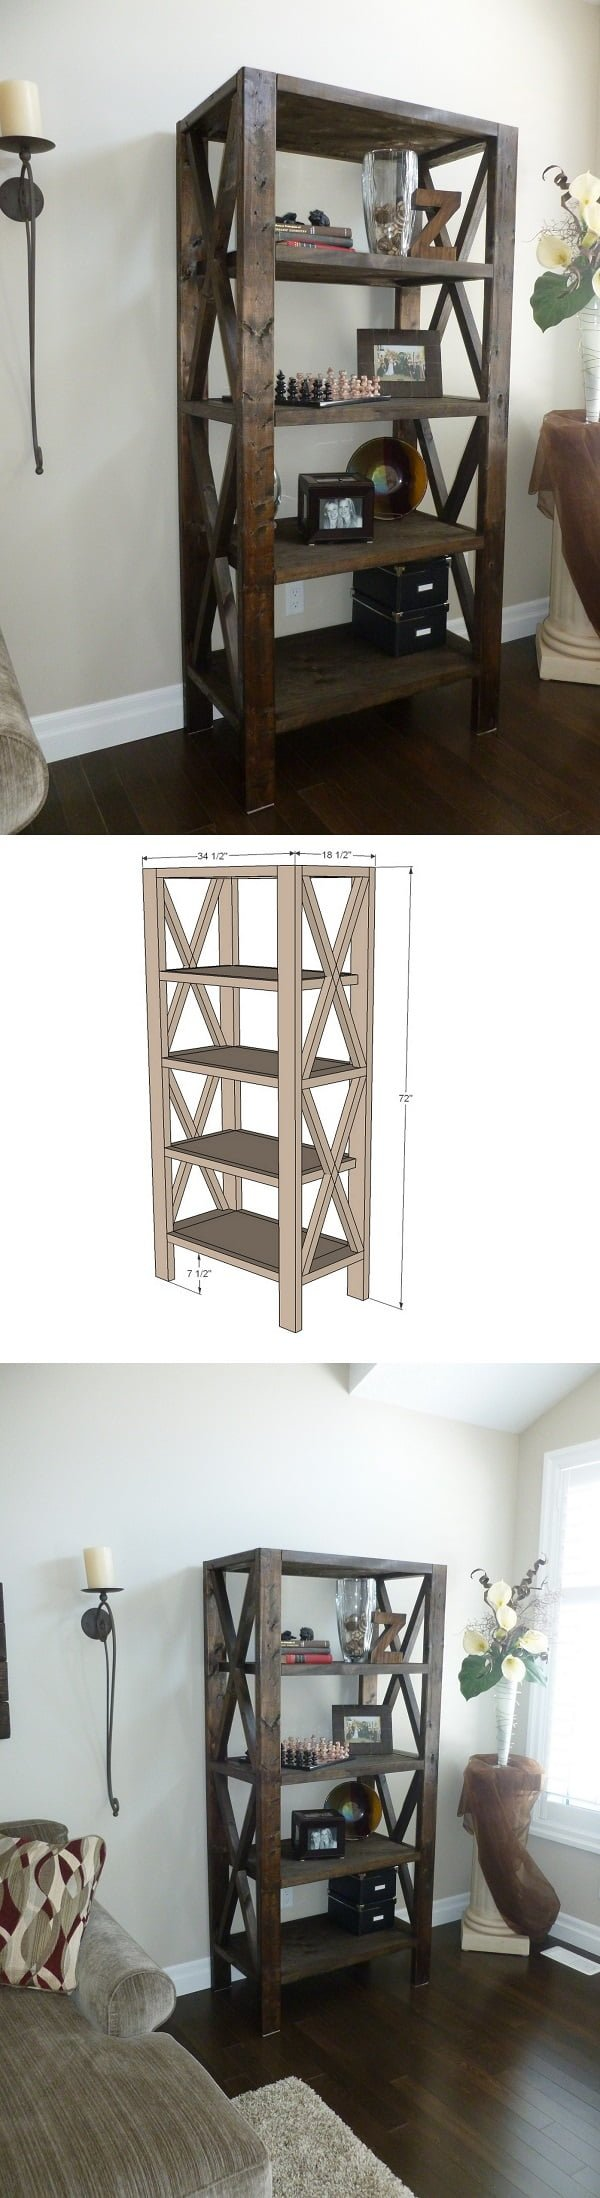 22 Easy DIY Bookshelf Ideas You Can Build at Home - Check out the tutorial how to build a   X tall bookshelf